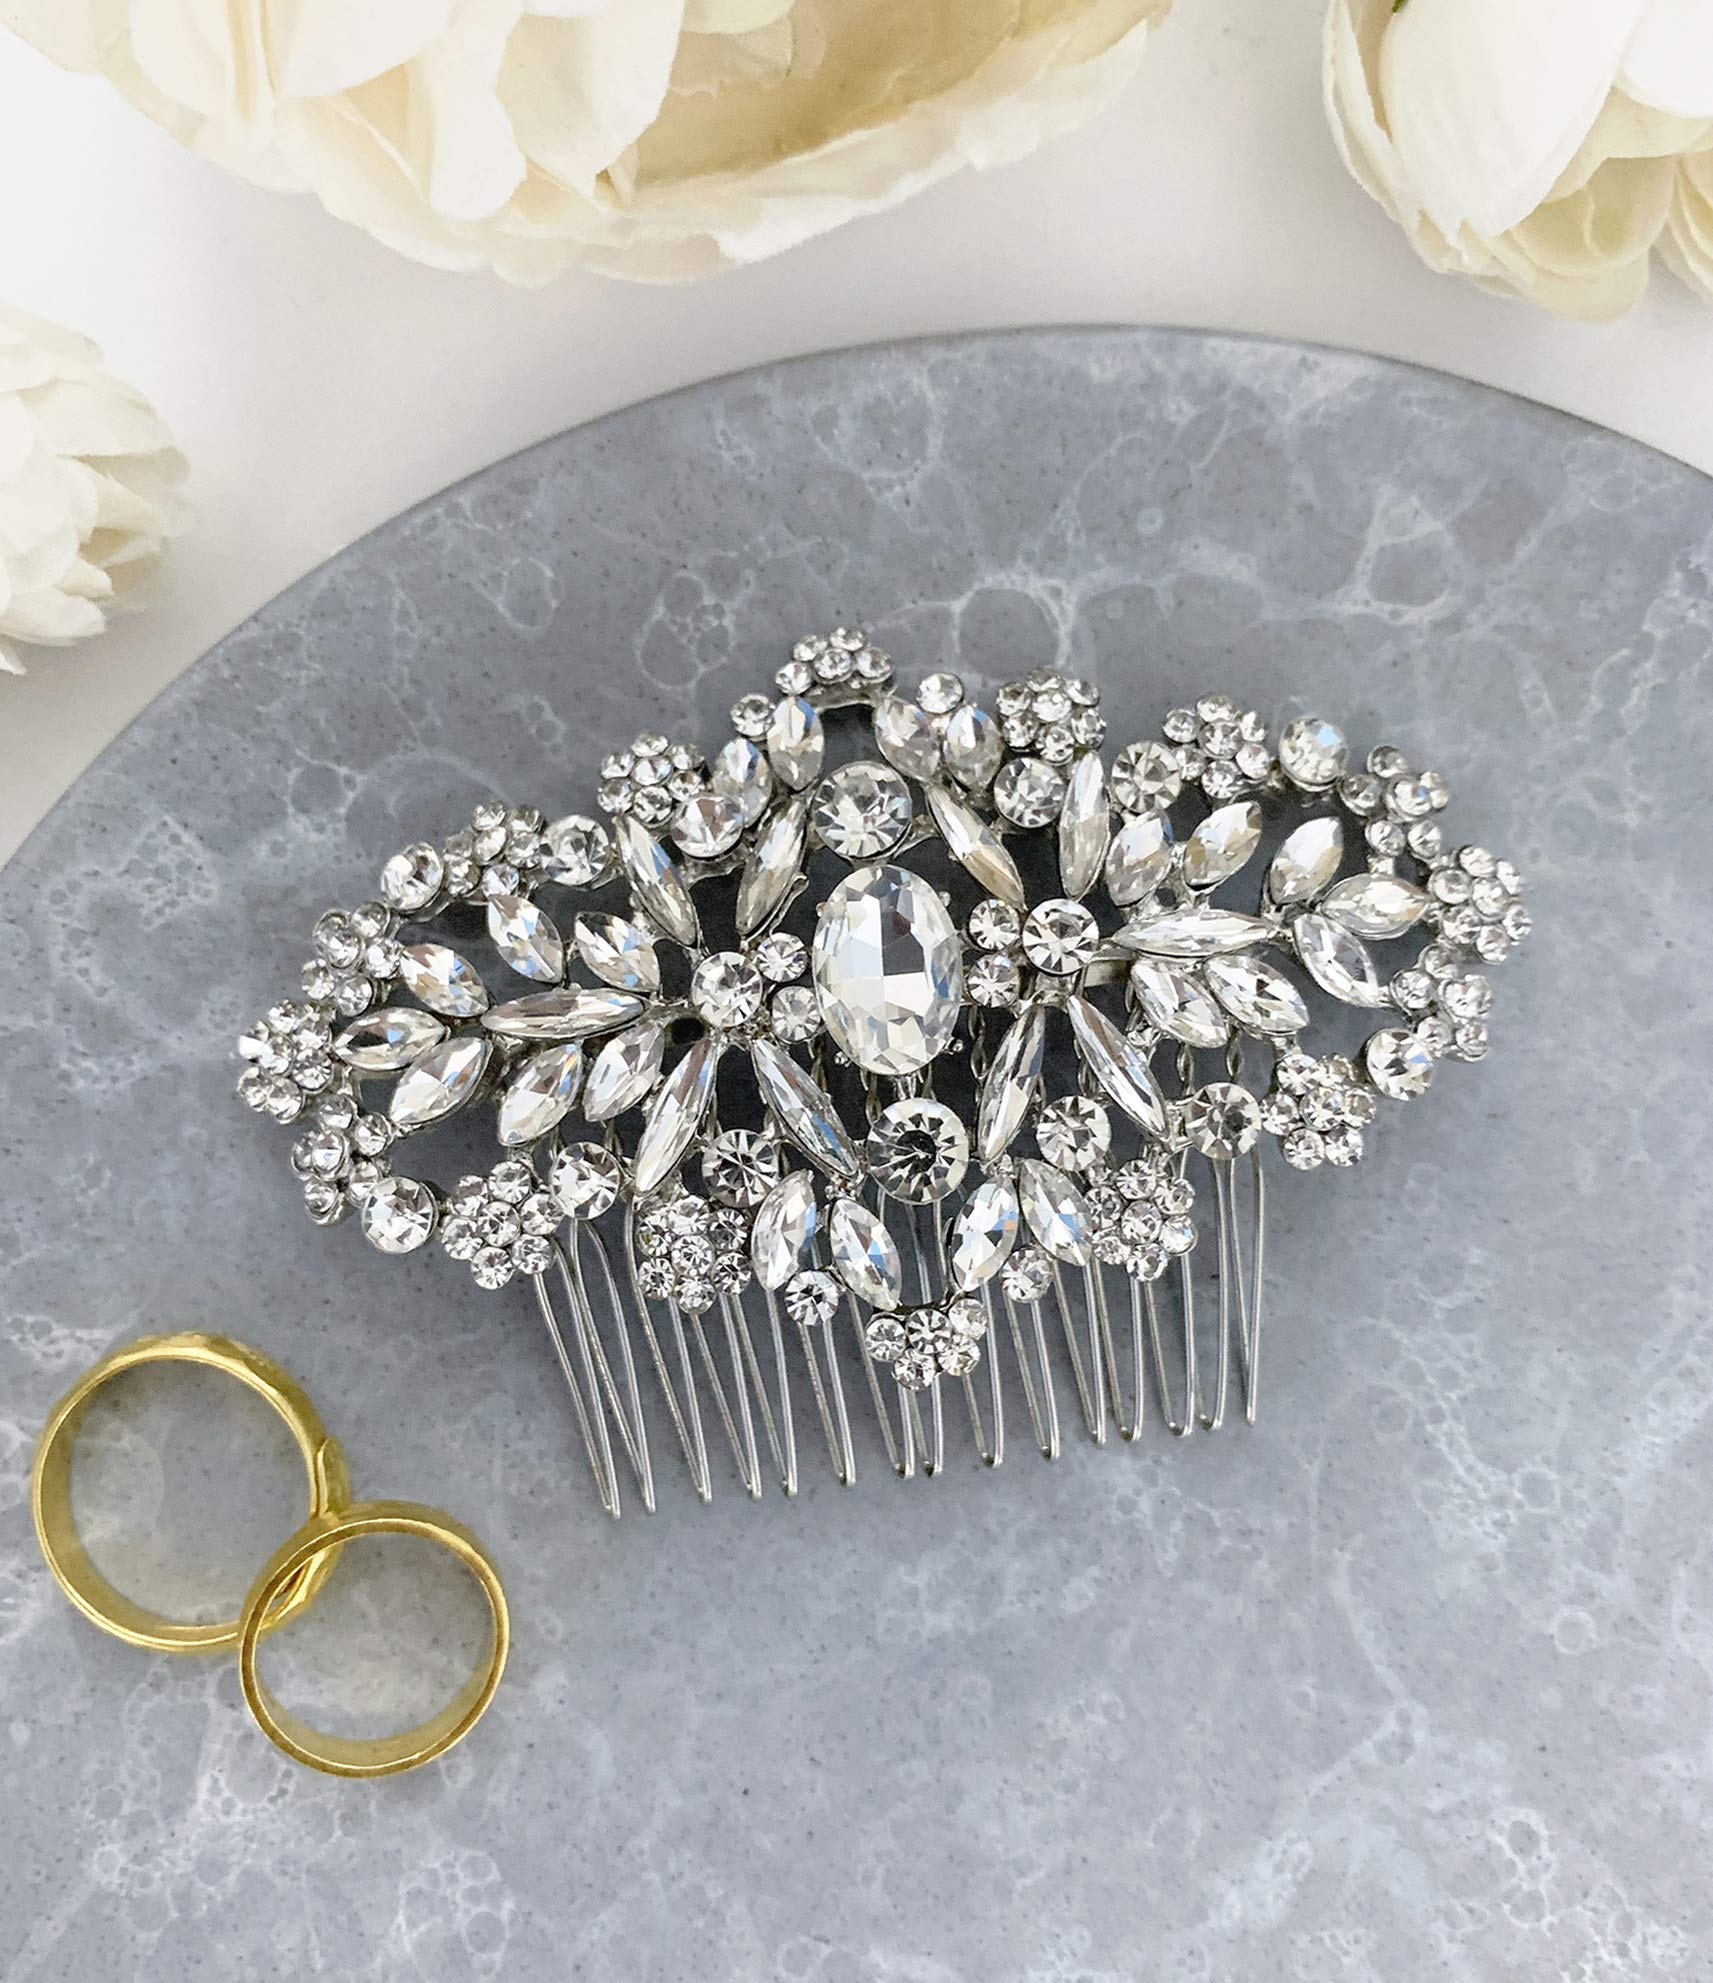 Wedding Hair Accessories Bridal Hair Comb Silver Crystal Rhinestone Classic Elegant Hair Pin Headpiece - For Brides and Bridesmaids - The White Toolbox by The White Toolbox